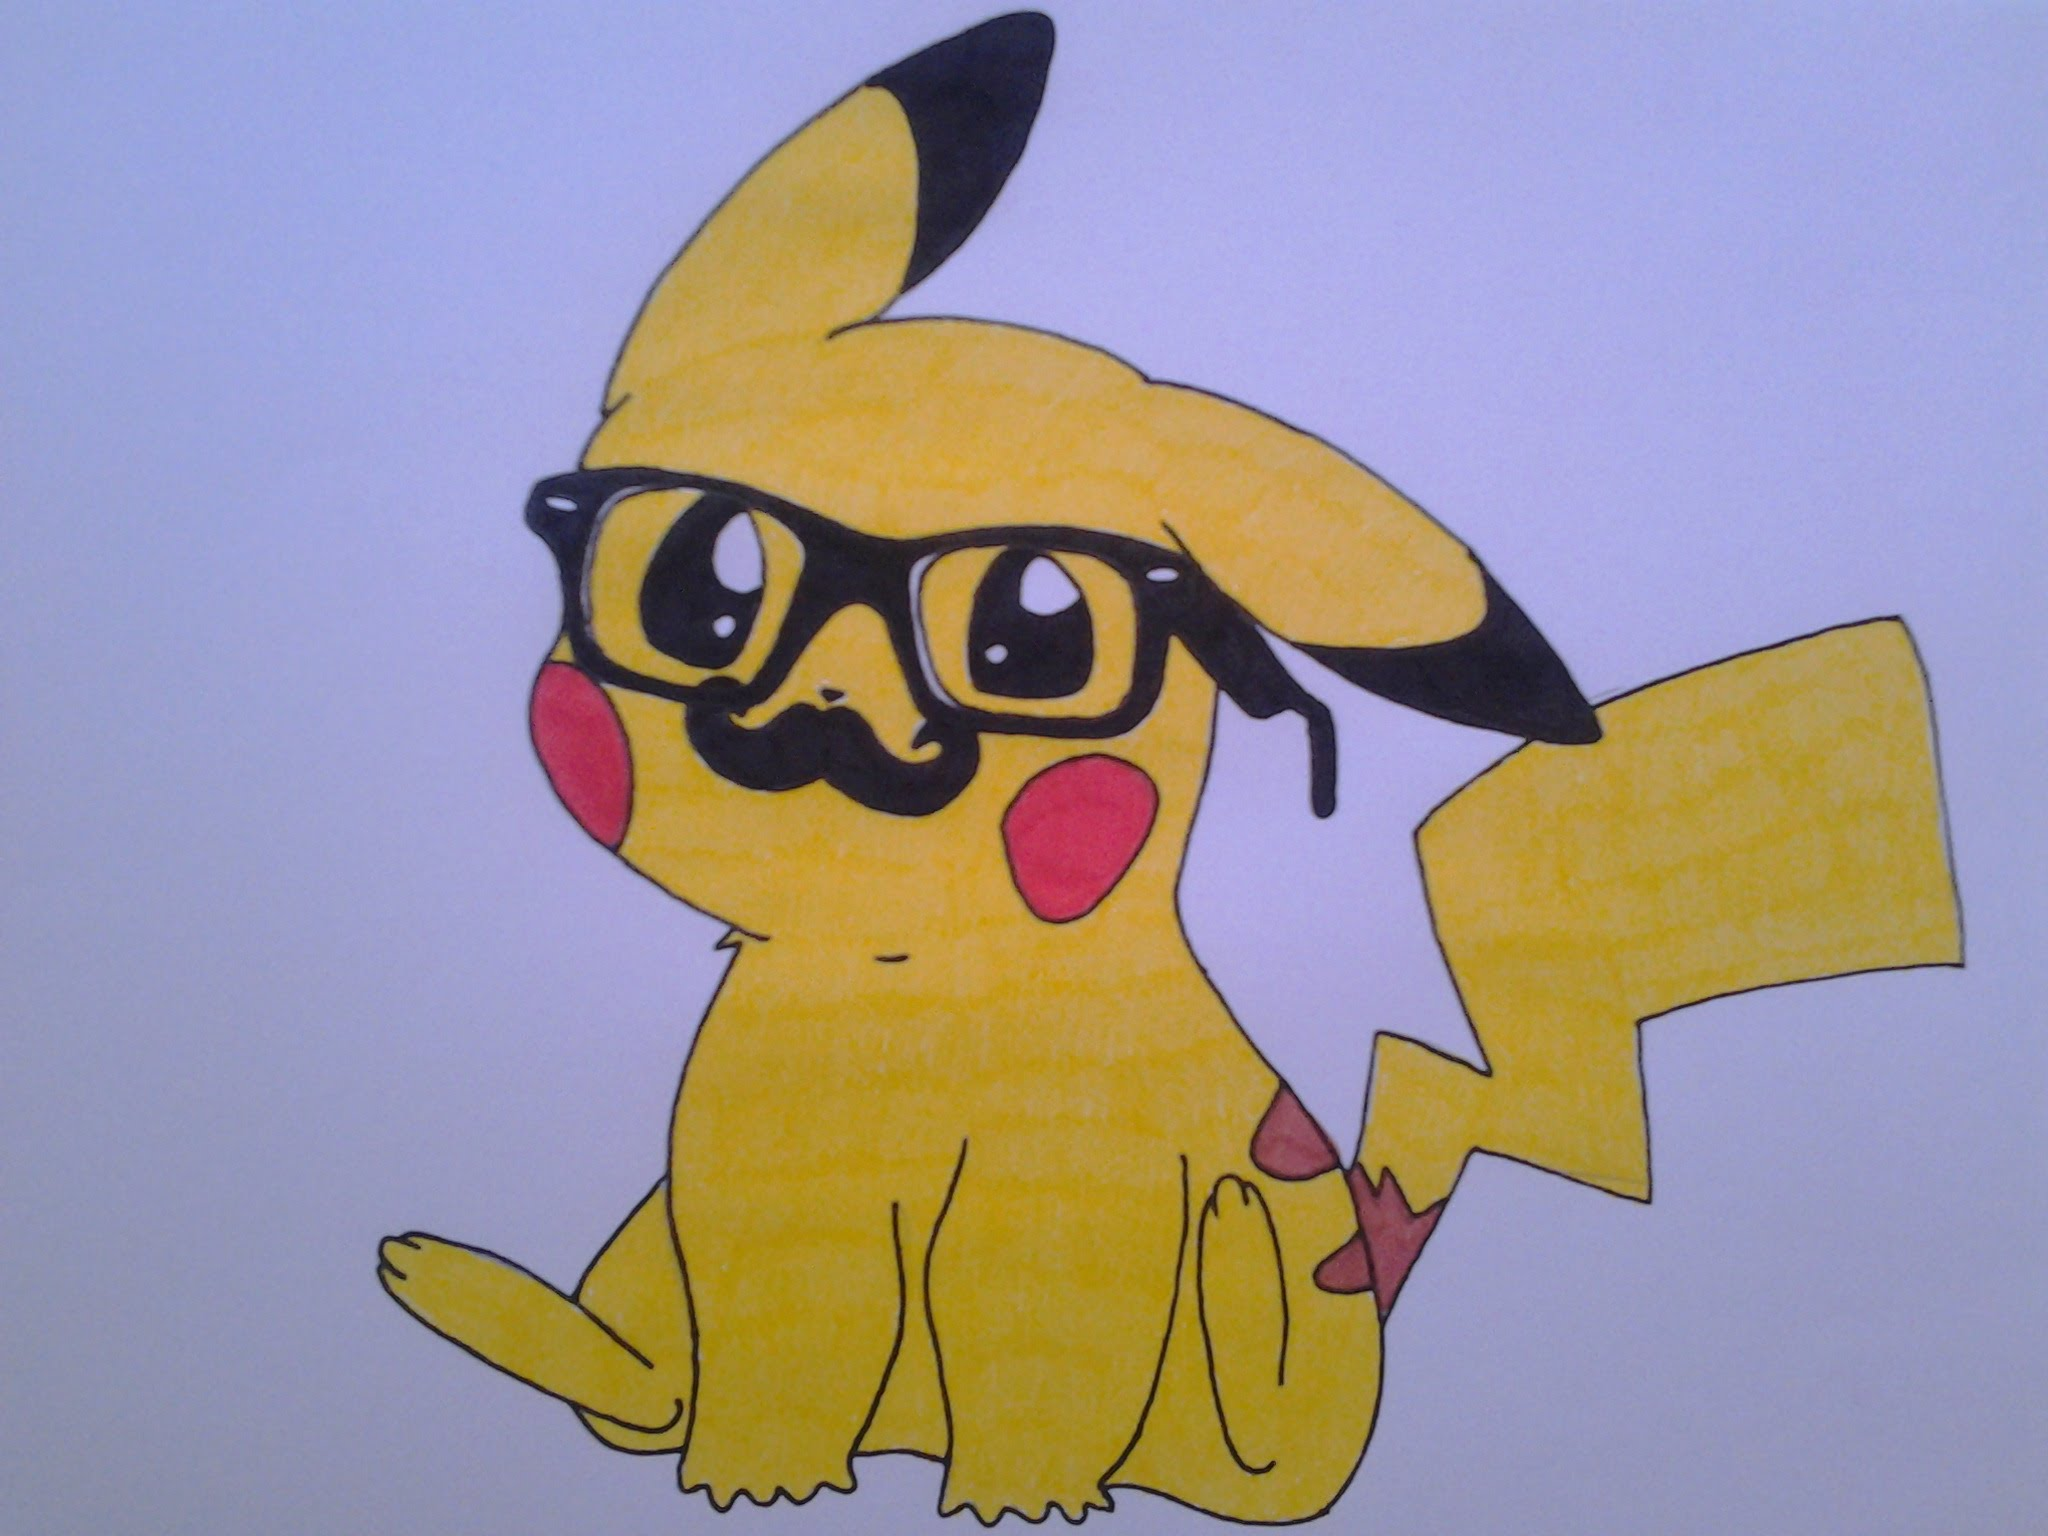 2048x1536 How To Draw A Cute Pikachu, With Hipster Glasses And Mustache